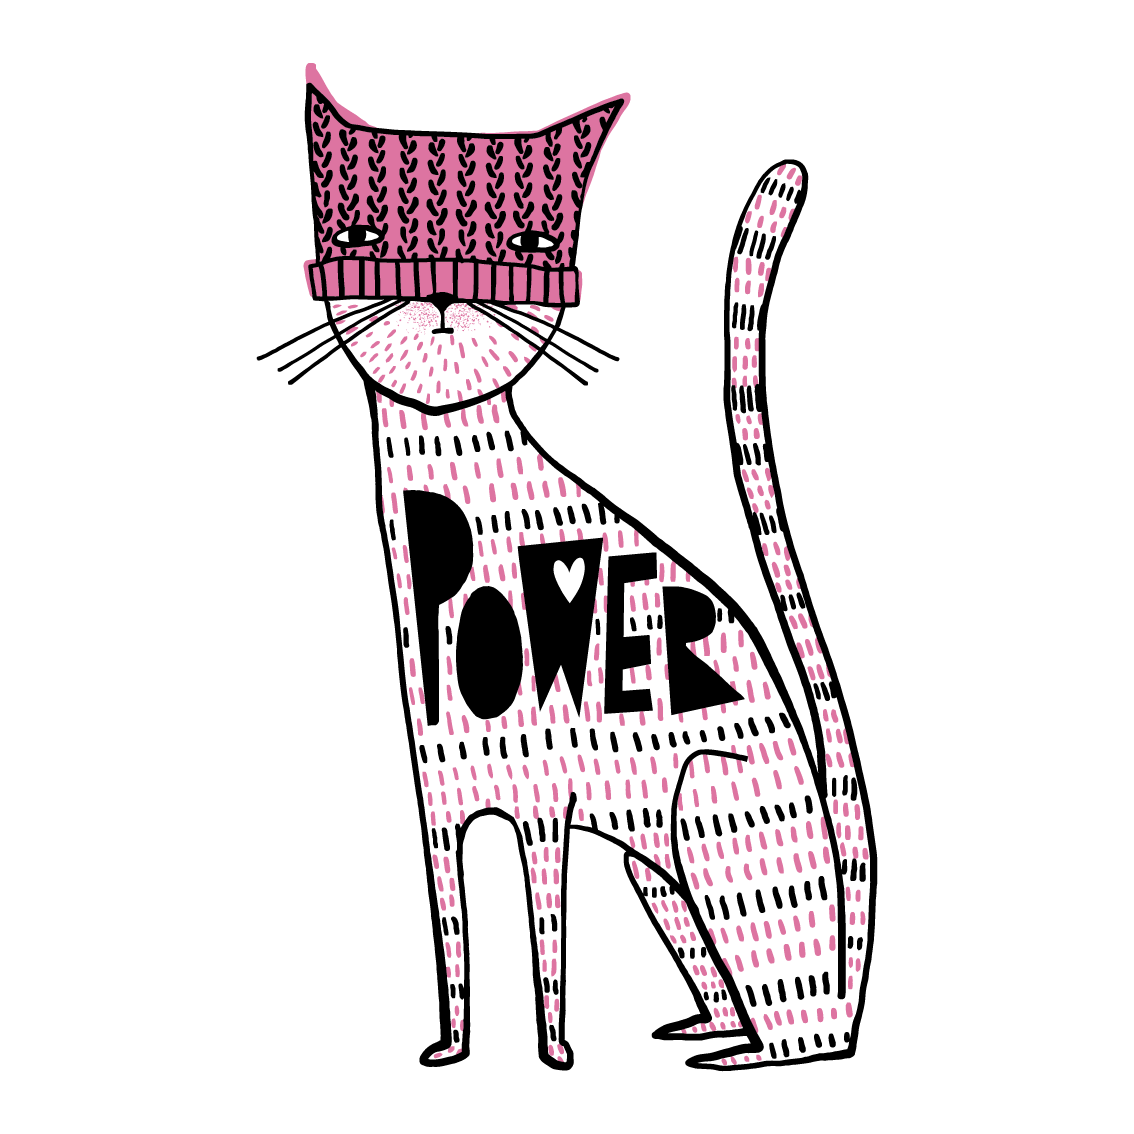 pullman artist s cat power design raises thousands for national Cat TV click to enlarge after separate c aigns featuring this design to support planned parenthood and the aclu artist cori